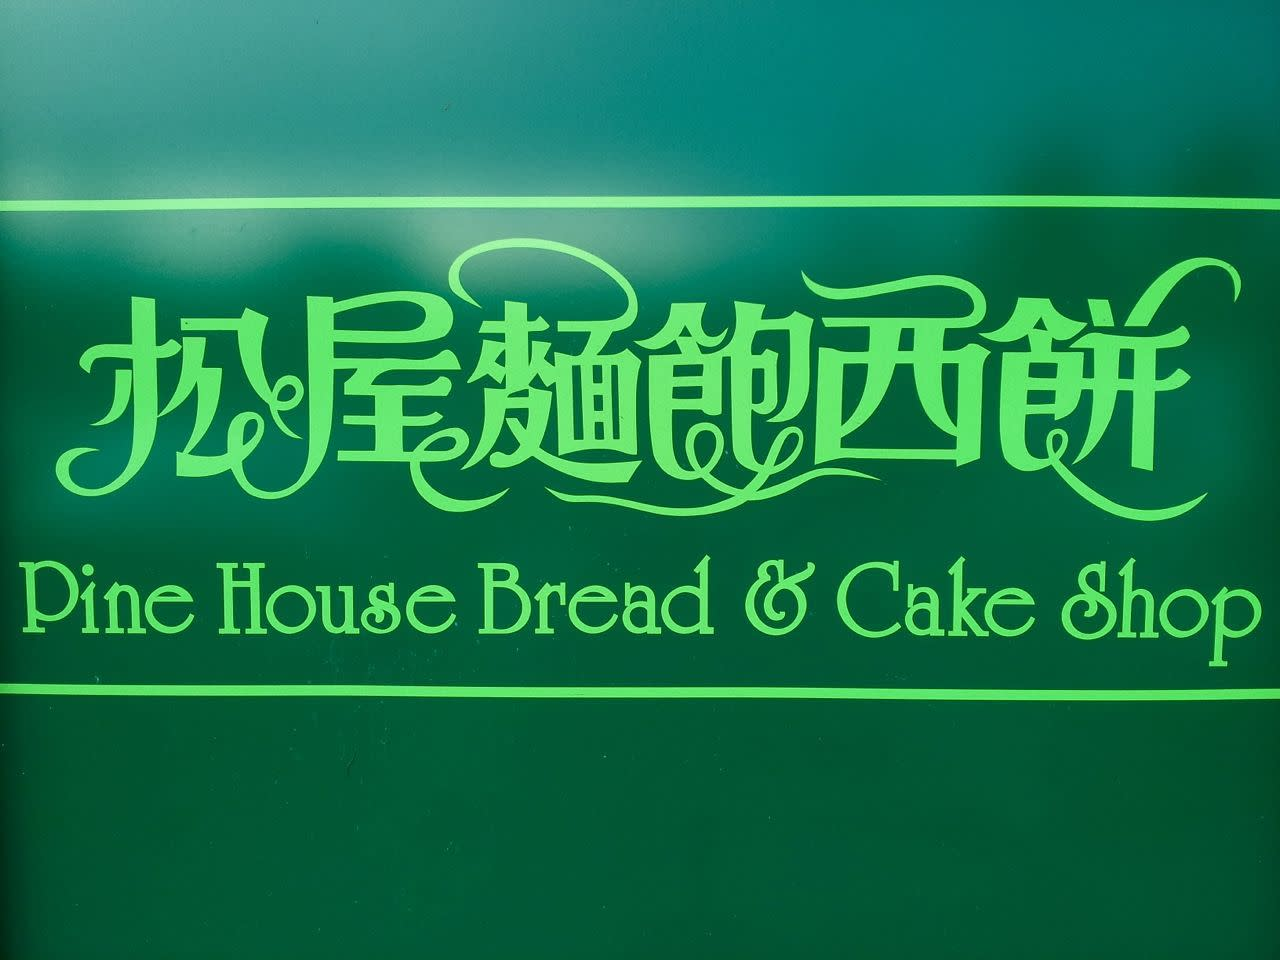 Pine House Bakery sign